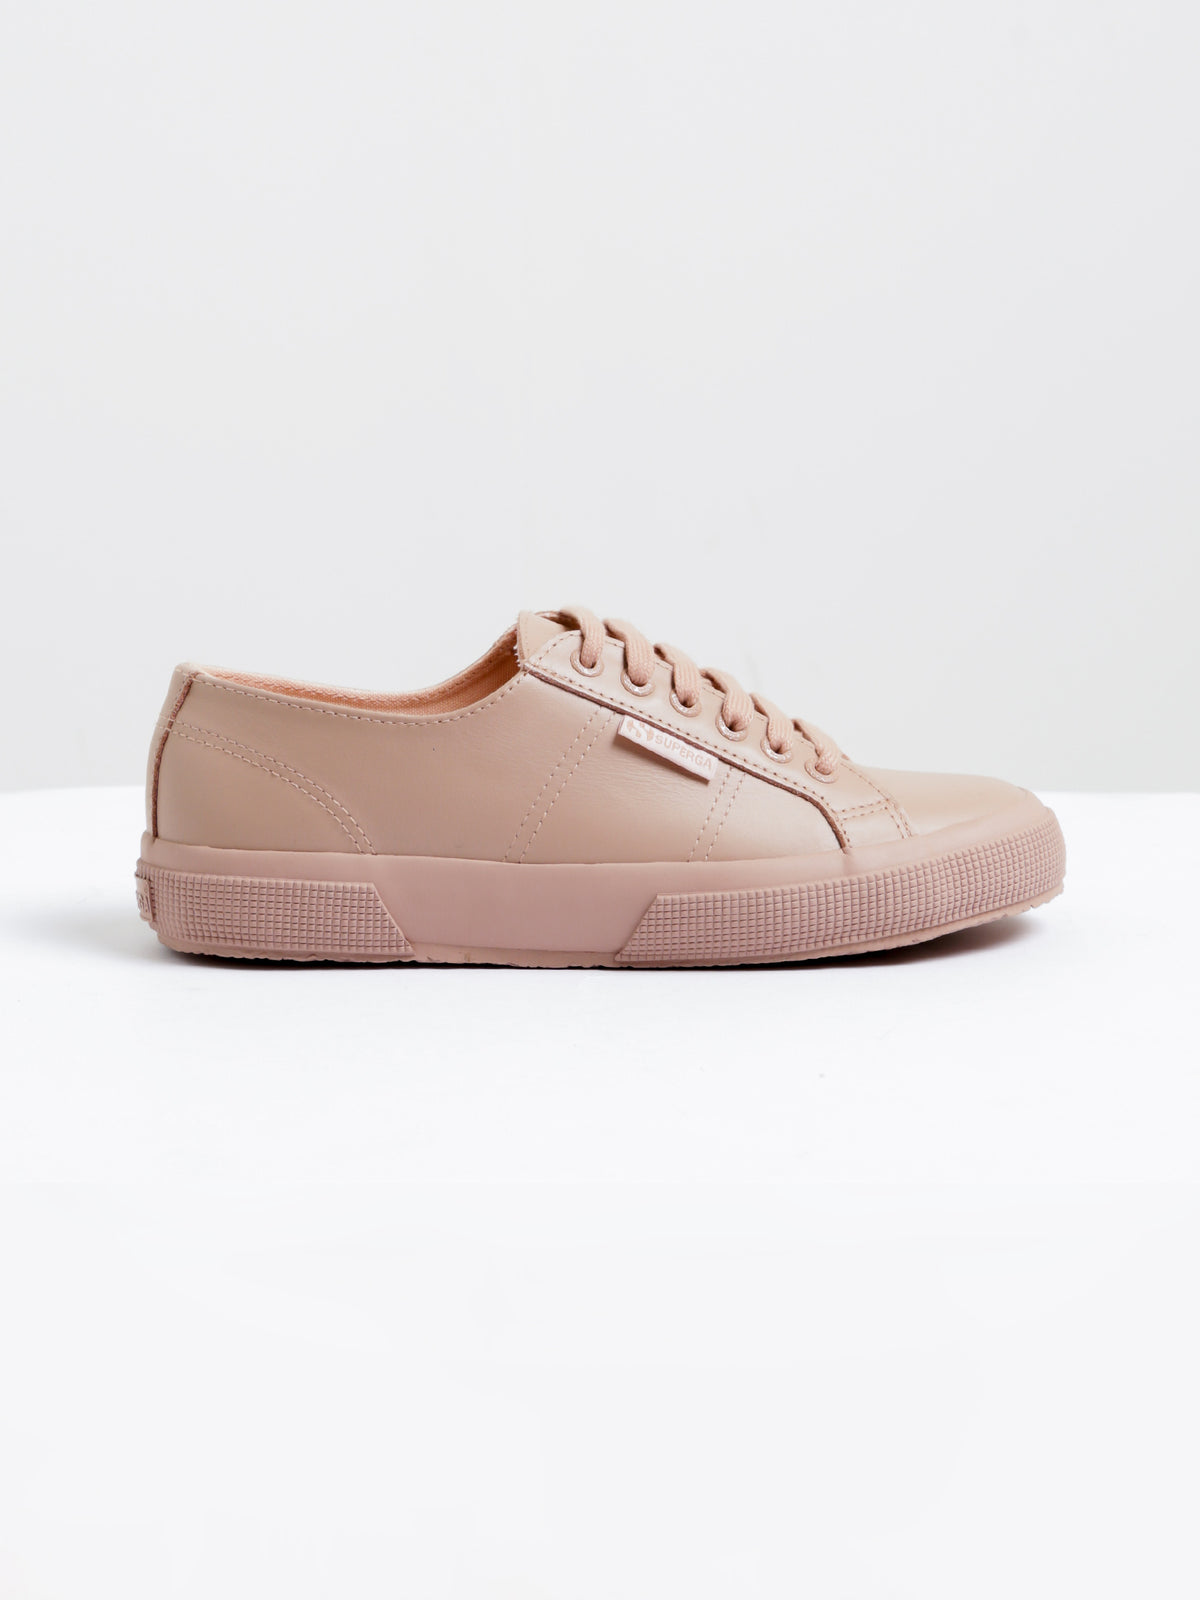 Womens 2750 FGLU Sneakers in Light Pink Leather